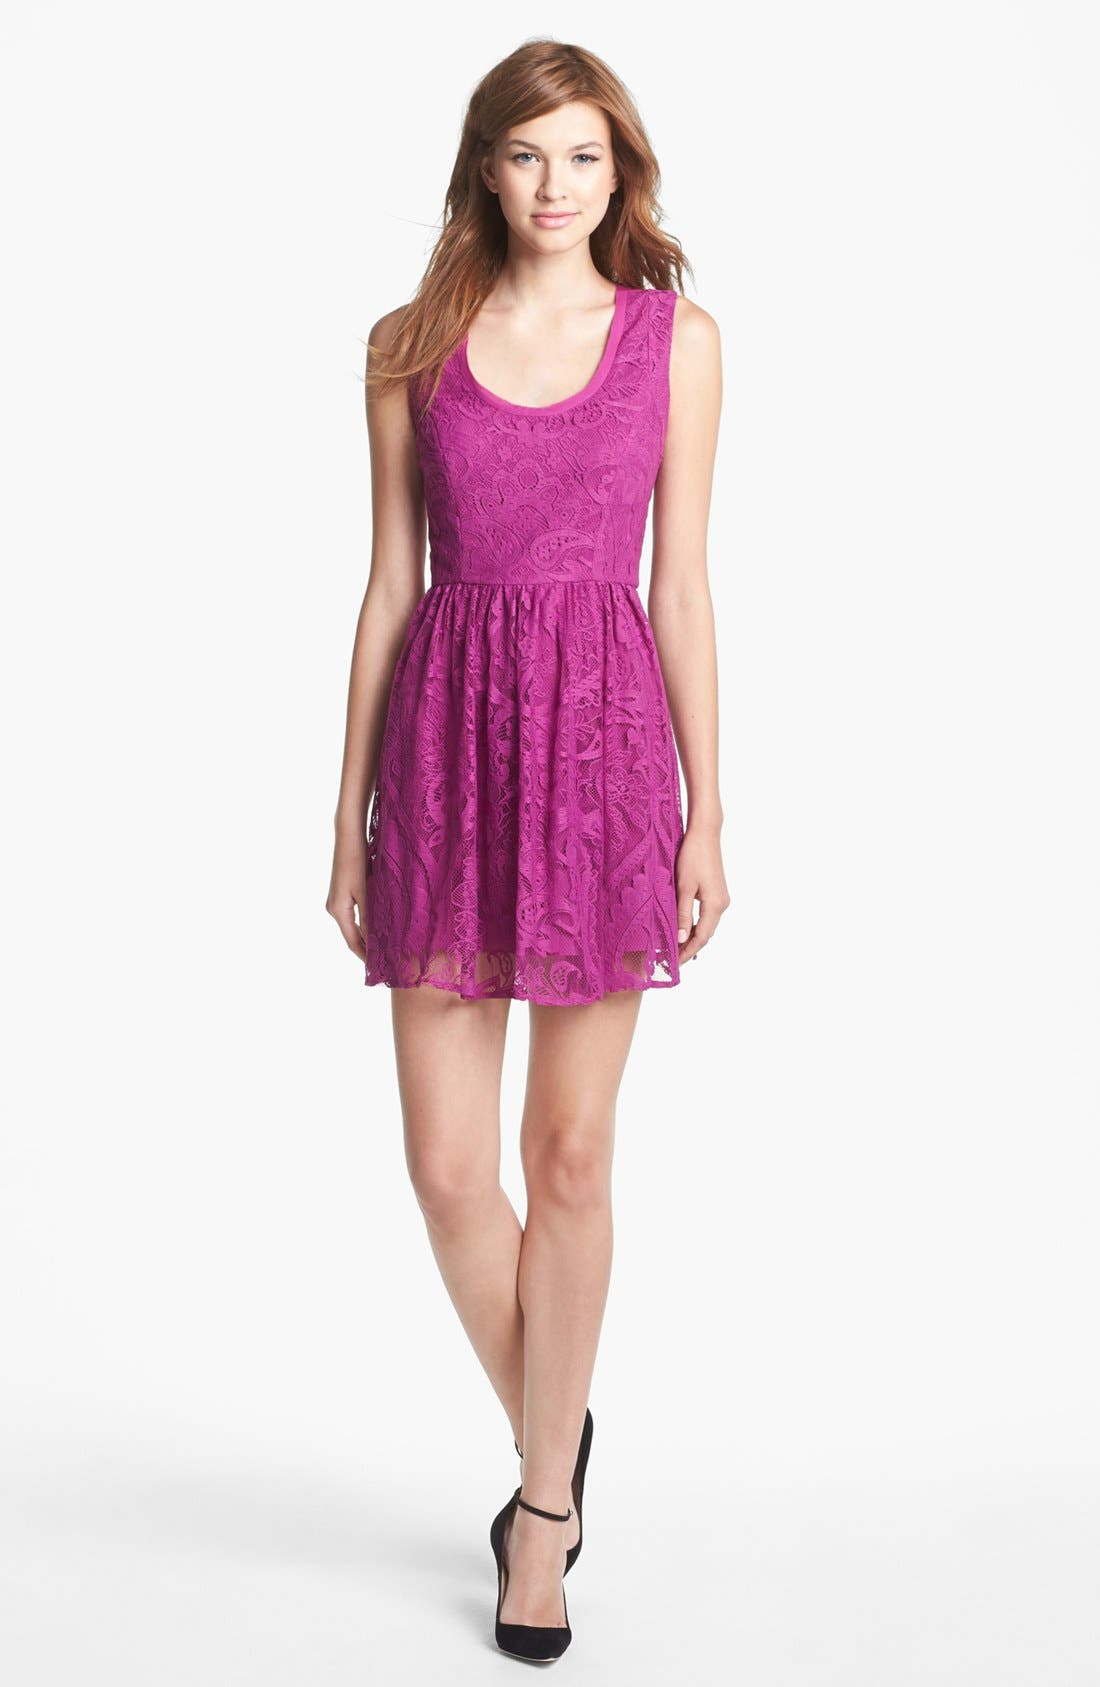 Main Image - Nicole Miller Lace Fit & Flare Dress